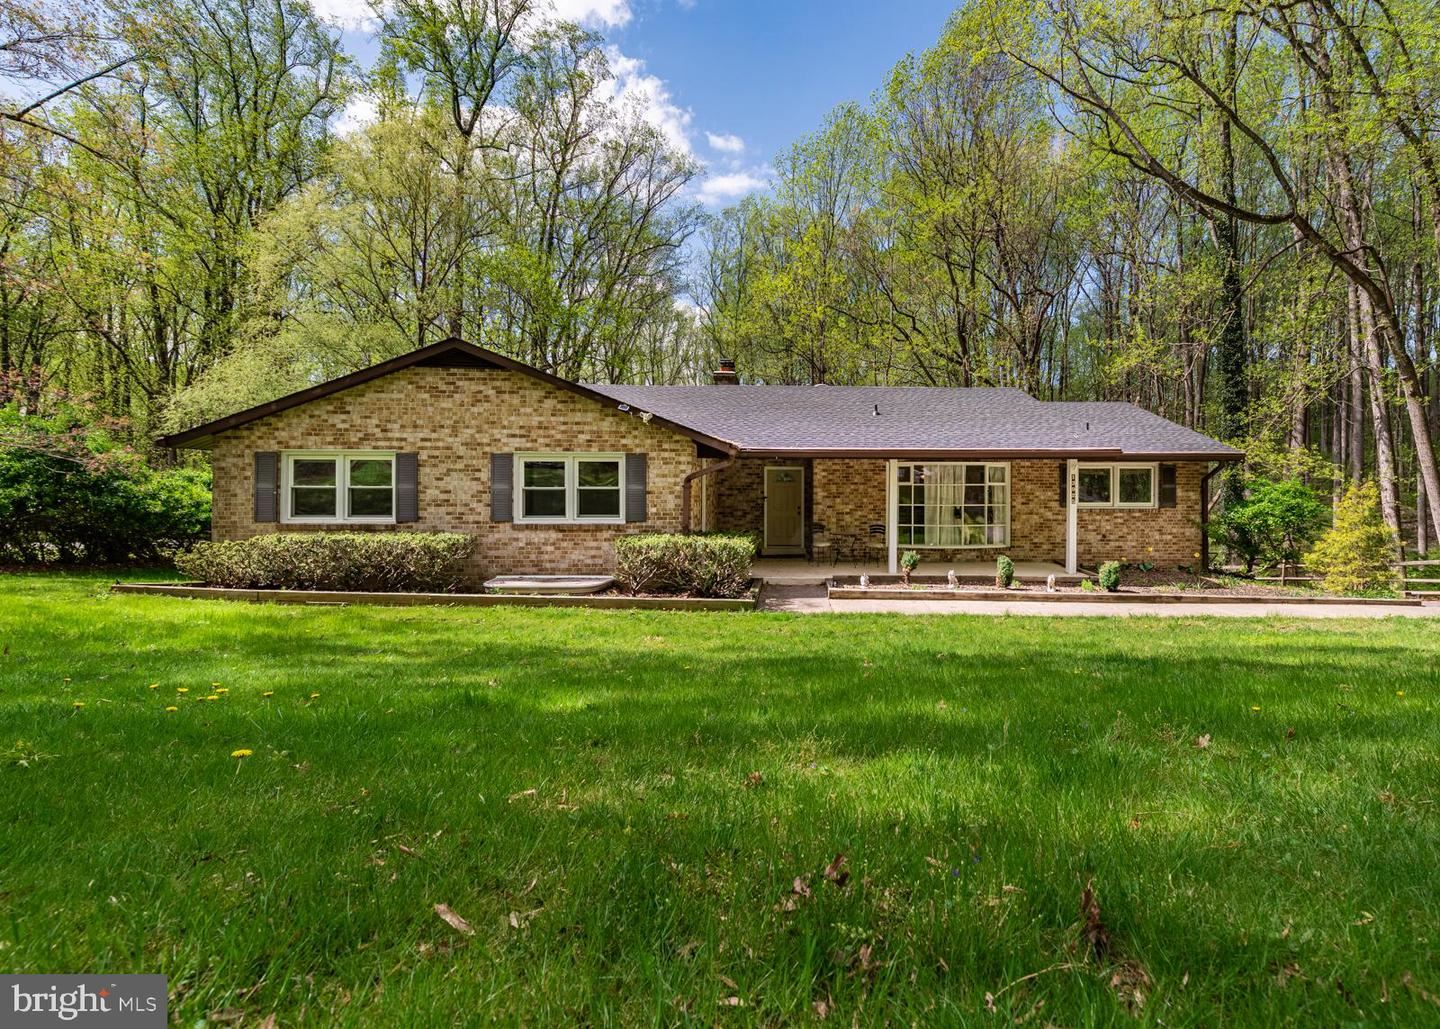 13925 WAYSIDE DR, Clarksville, MD 21029 - MLS#: MDHW293952